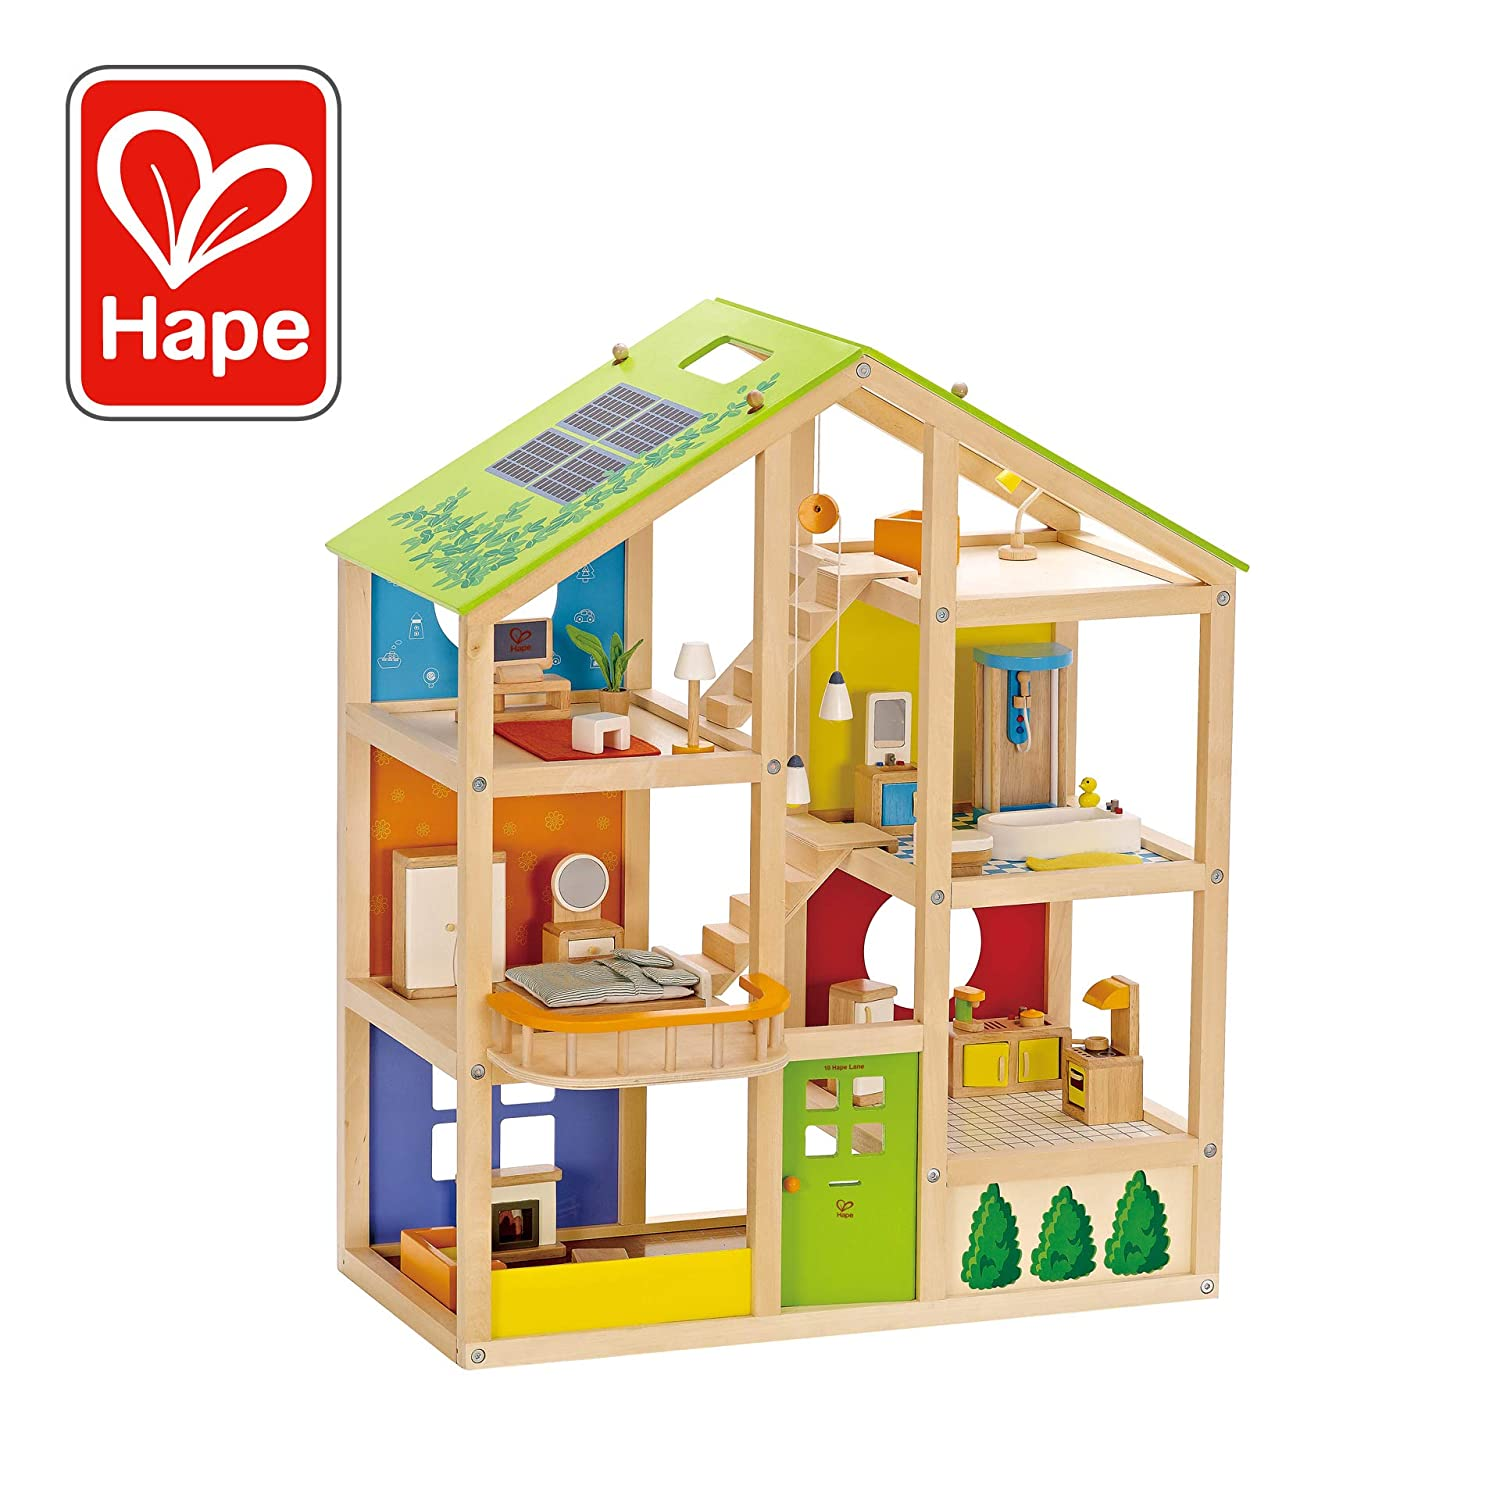 Top 9 Best Dollhouse for Toddlers Reviews in 2019 4